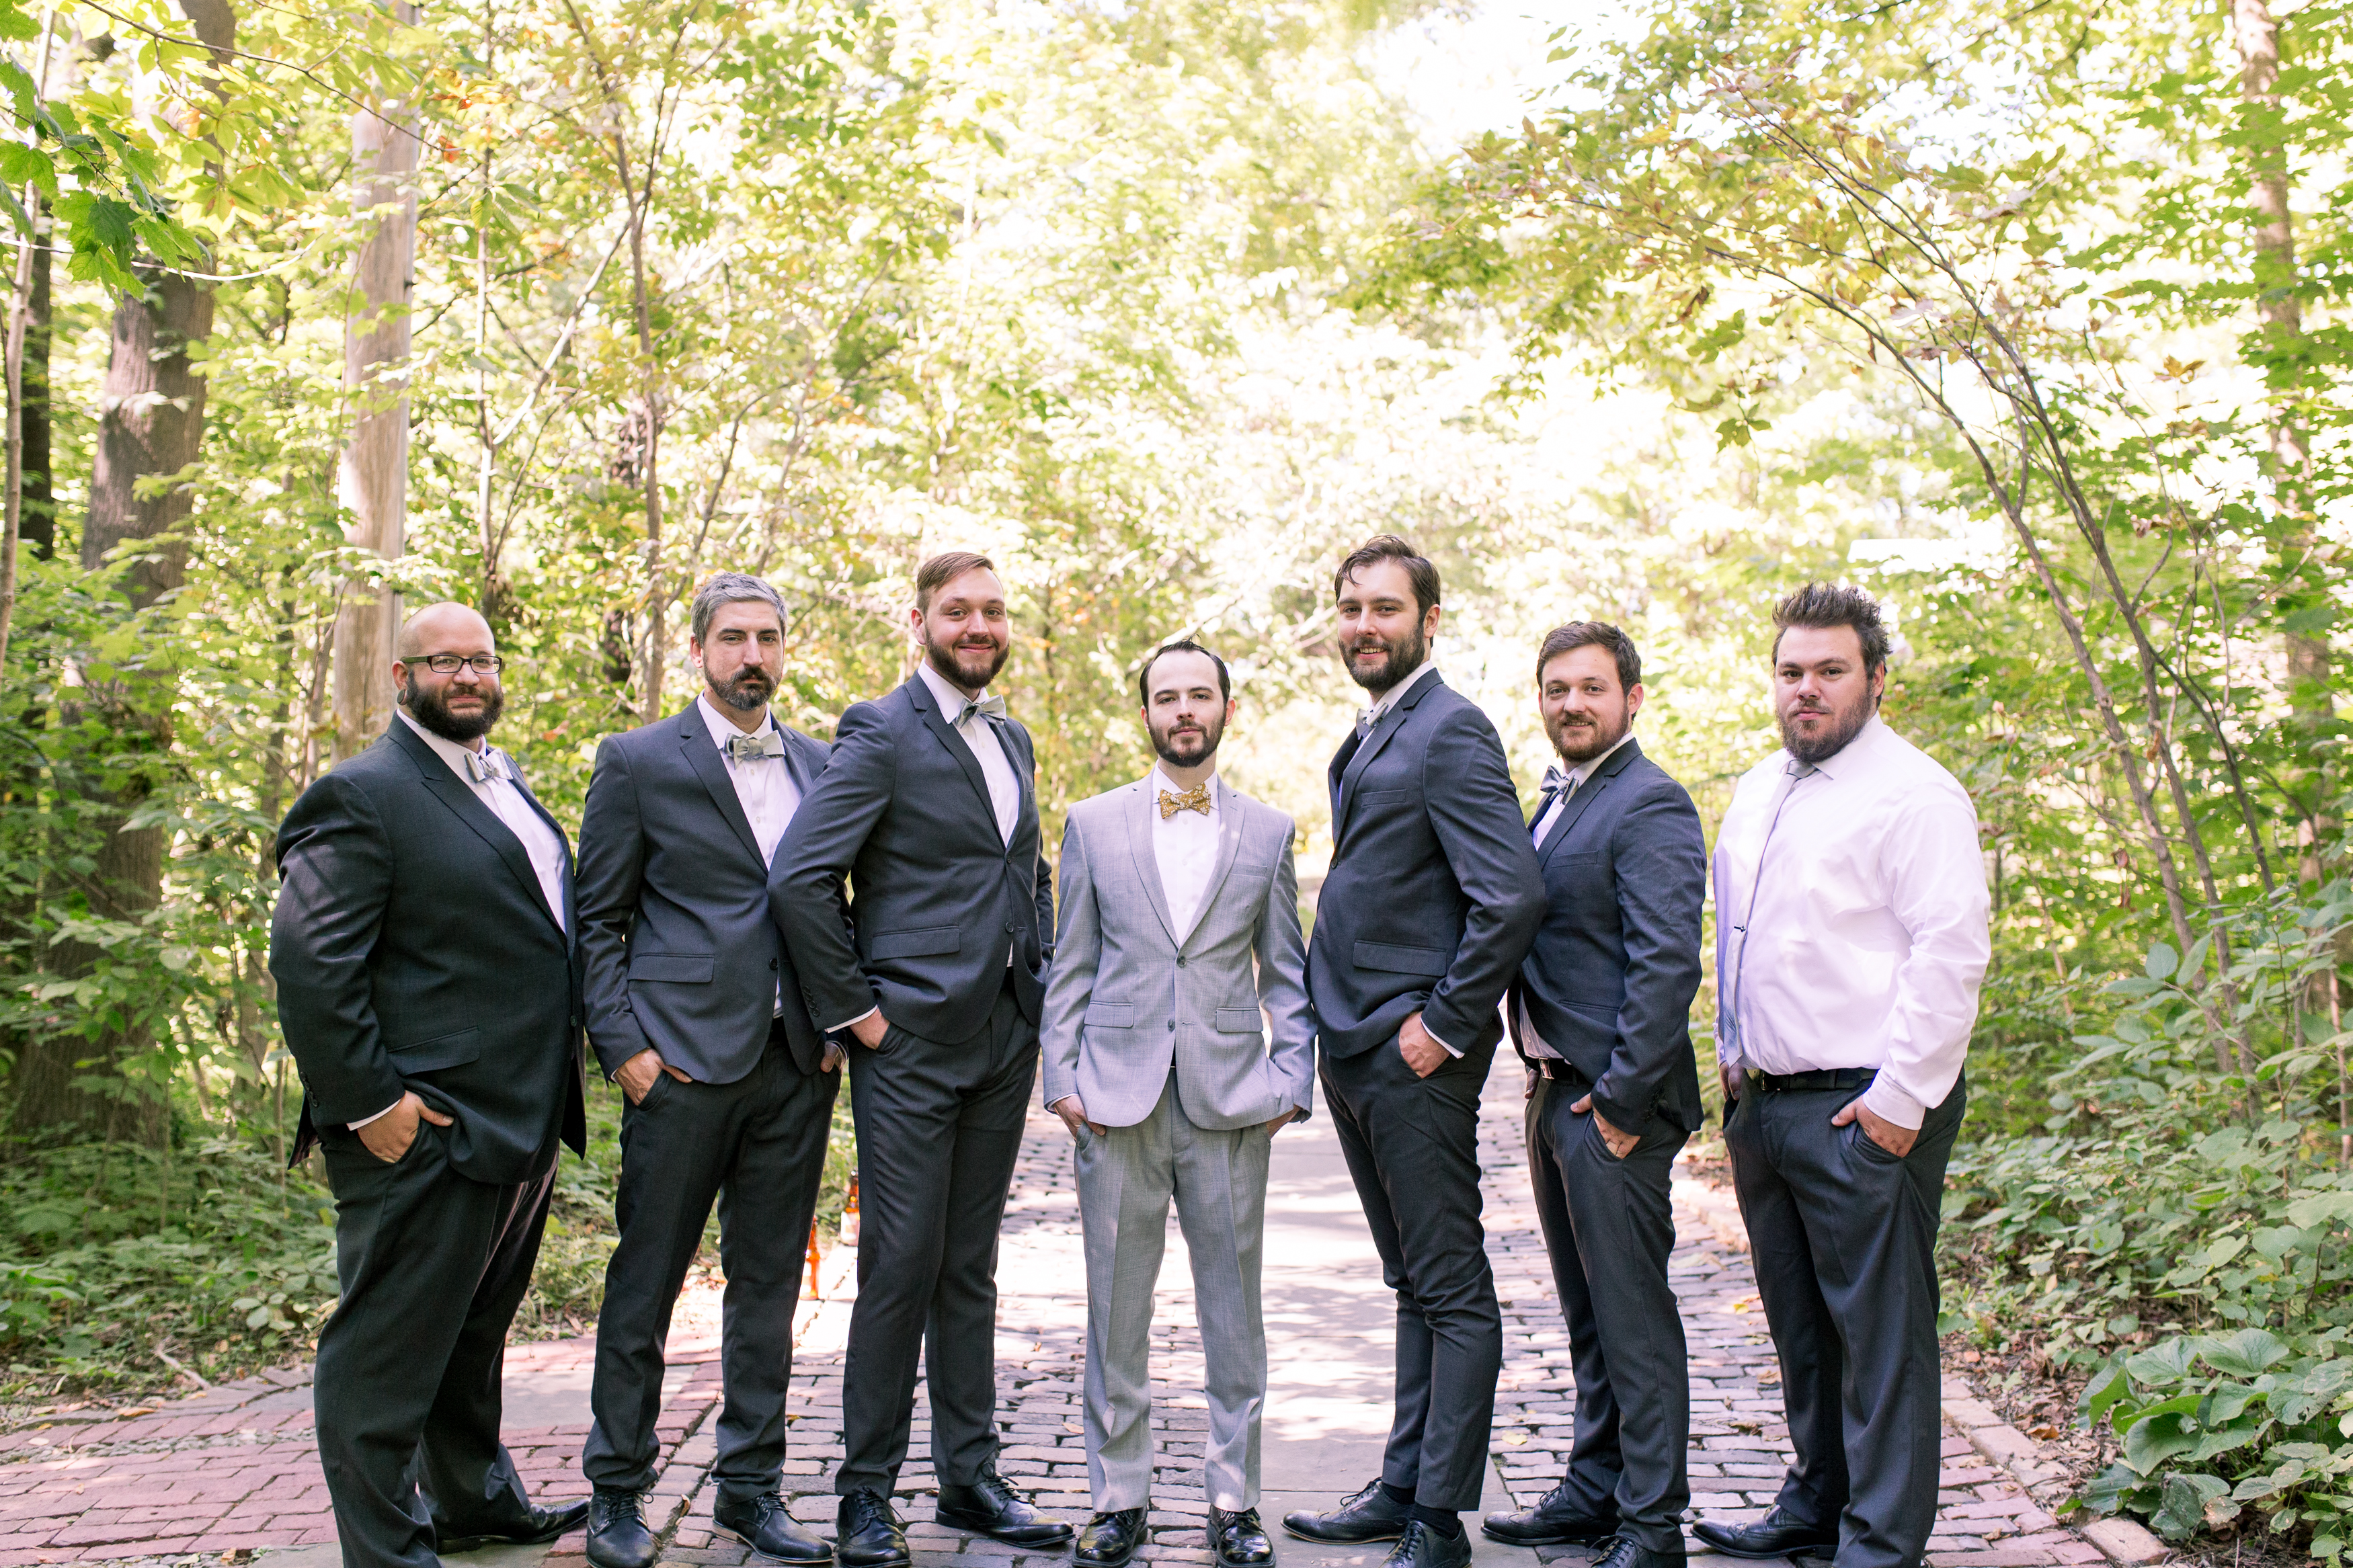 groomsmen and groom portraits before wedding at Minnetrista Cultural Center in Muncie Indiana